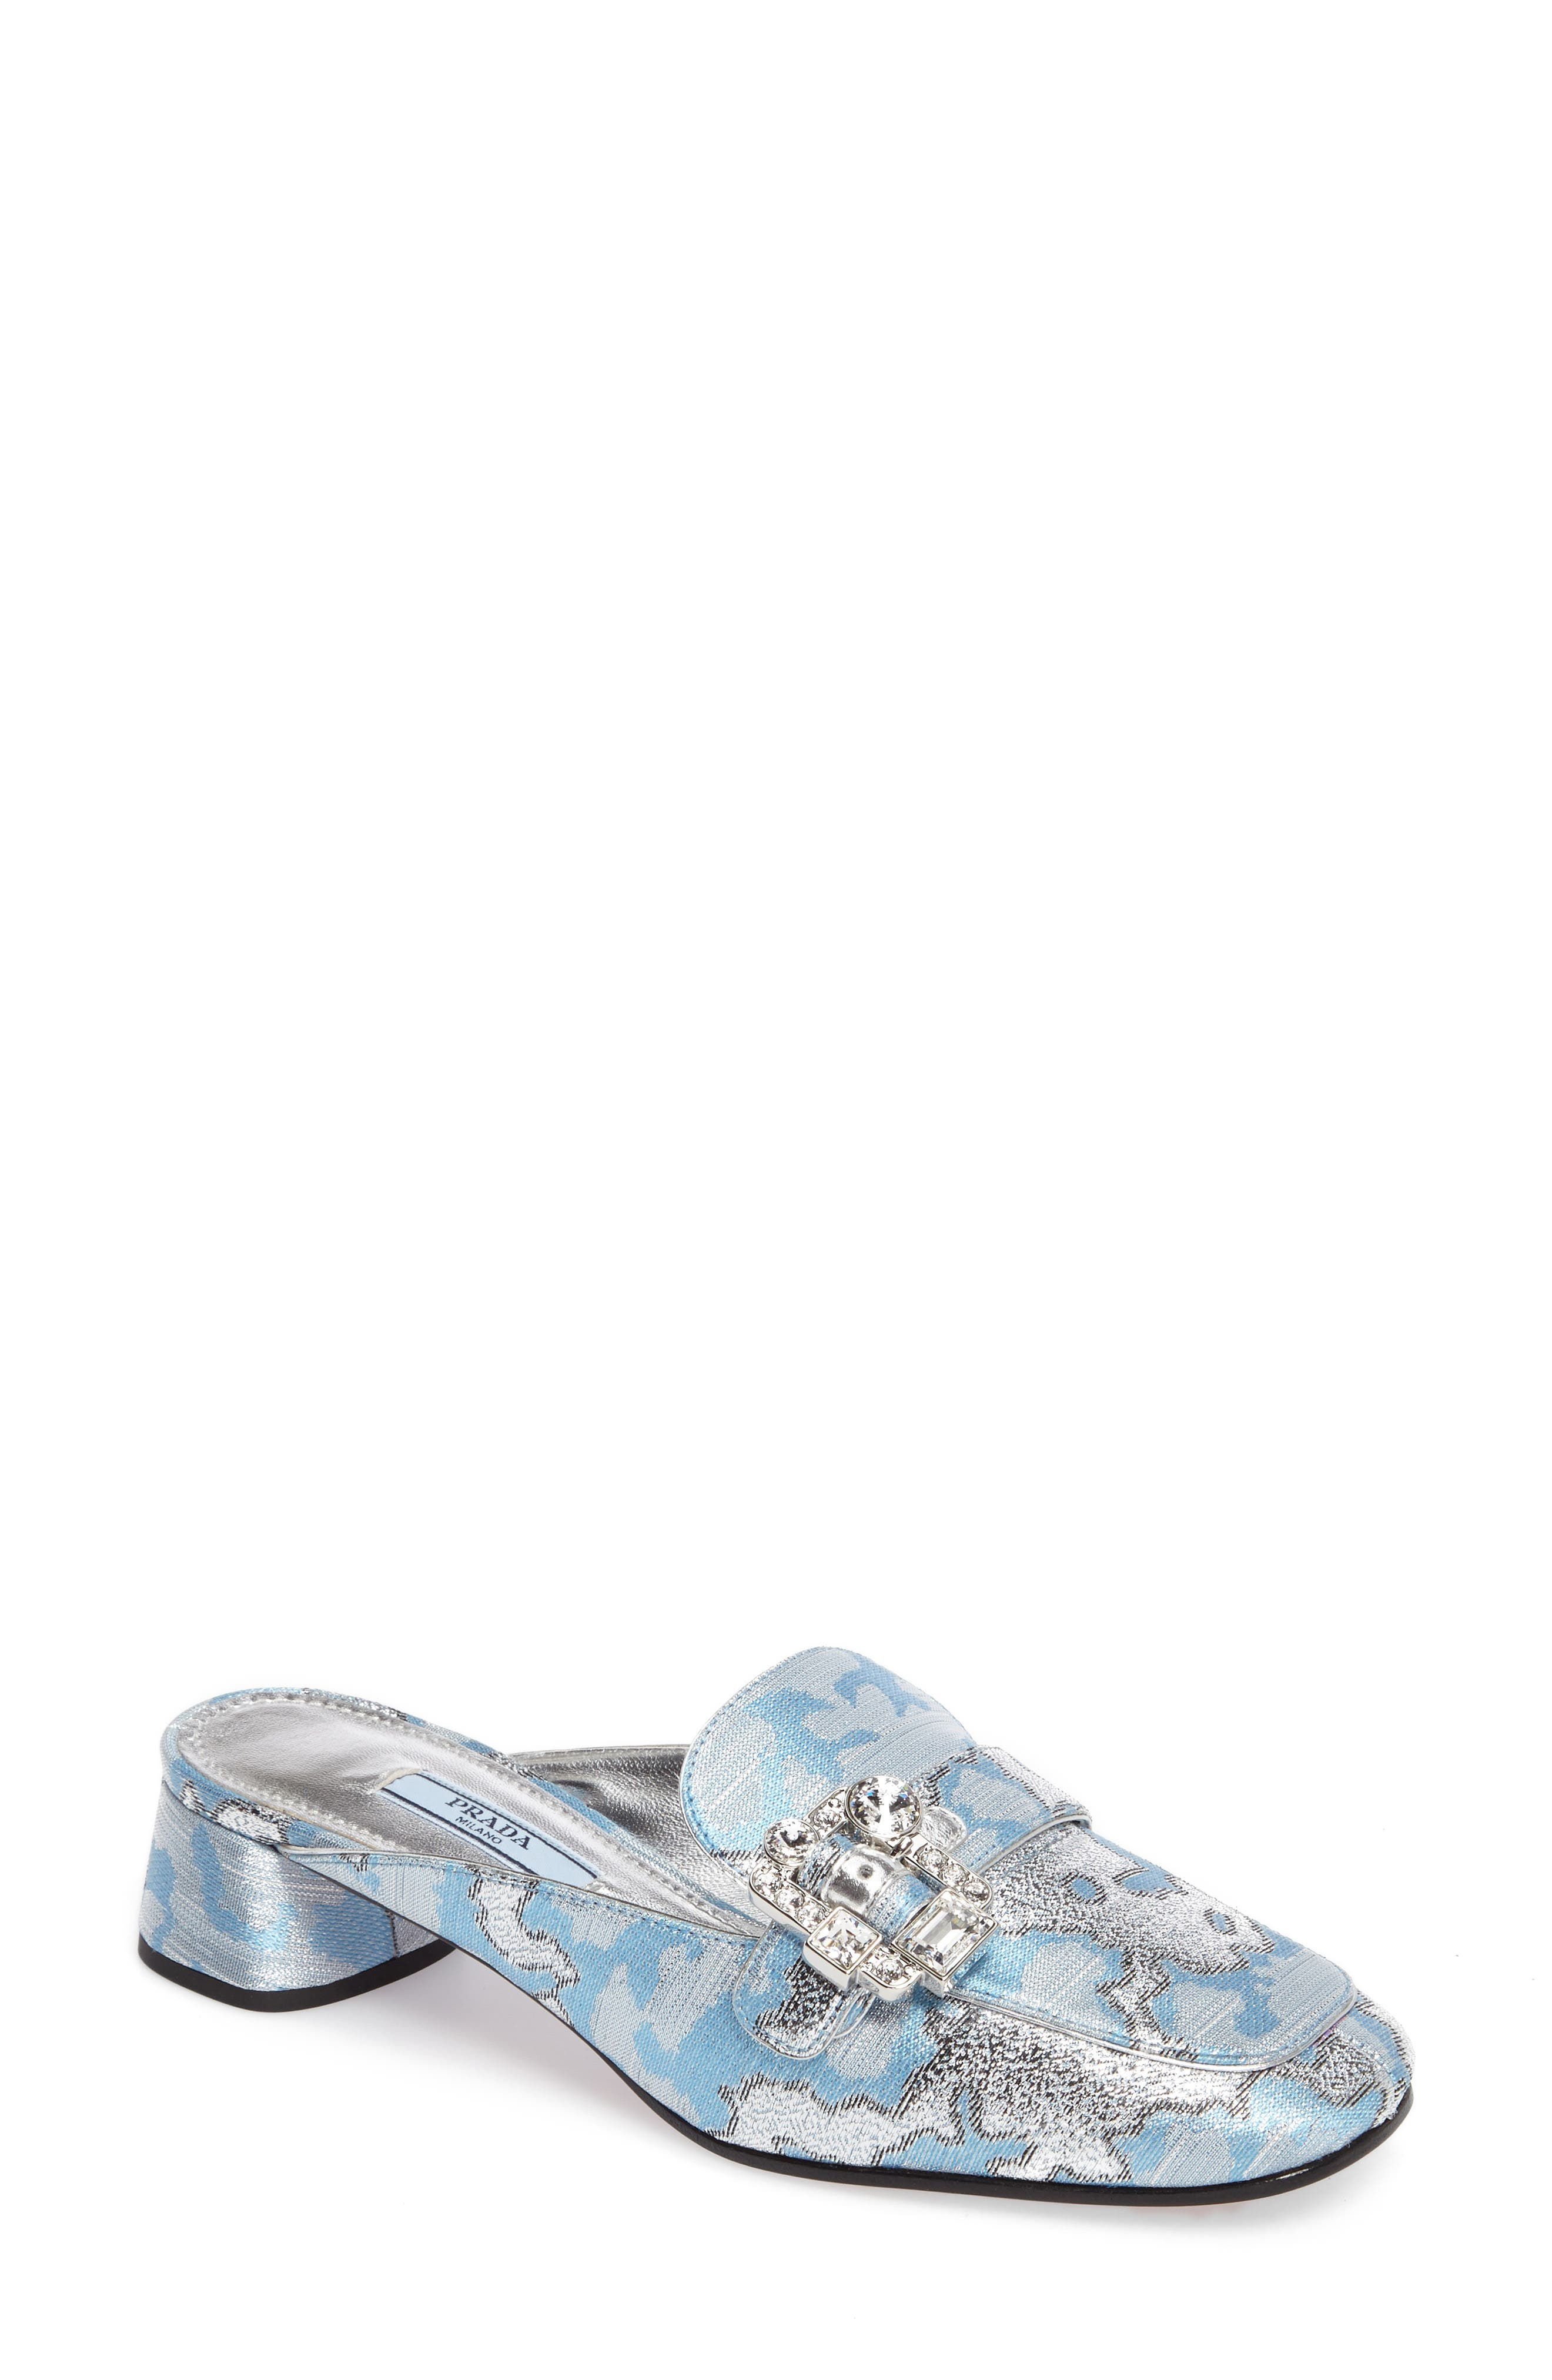 Crystal Buckle Loafer Mule,                             Main thumbnail 1, color,                             425